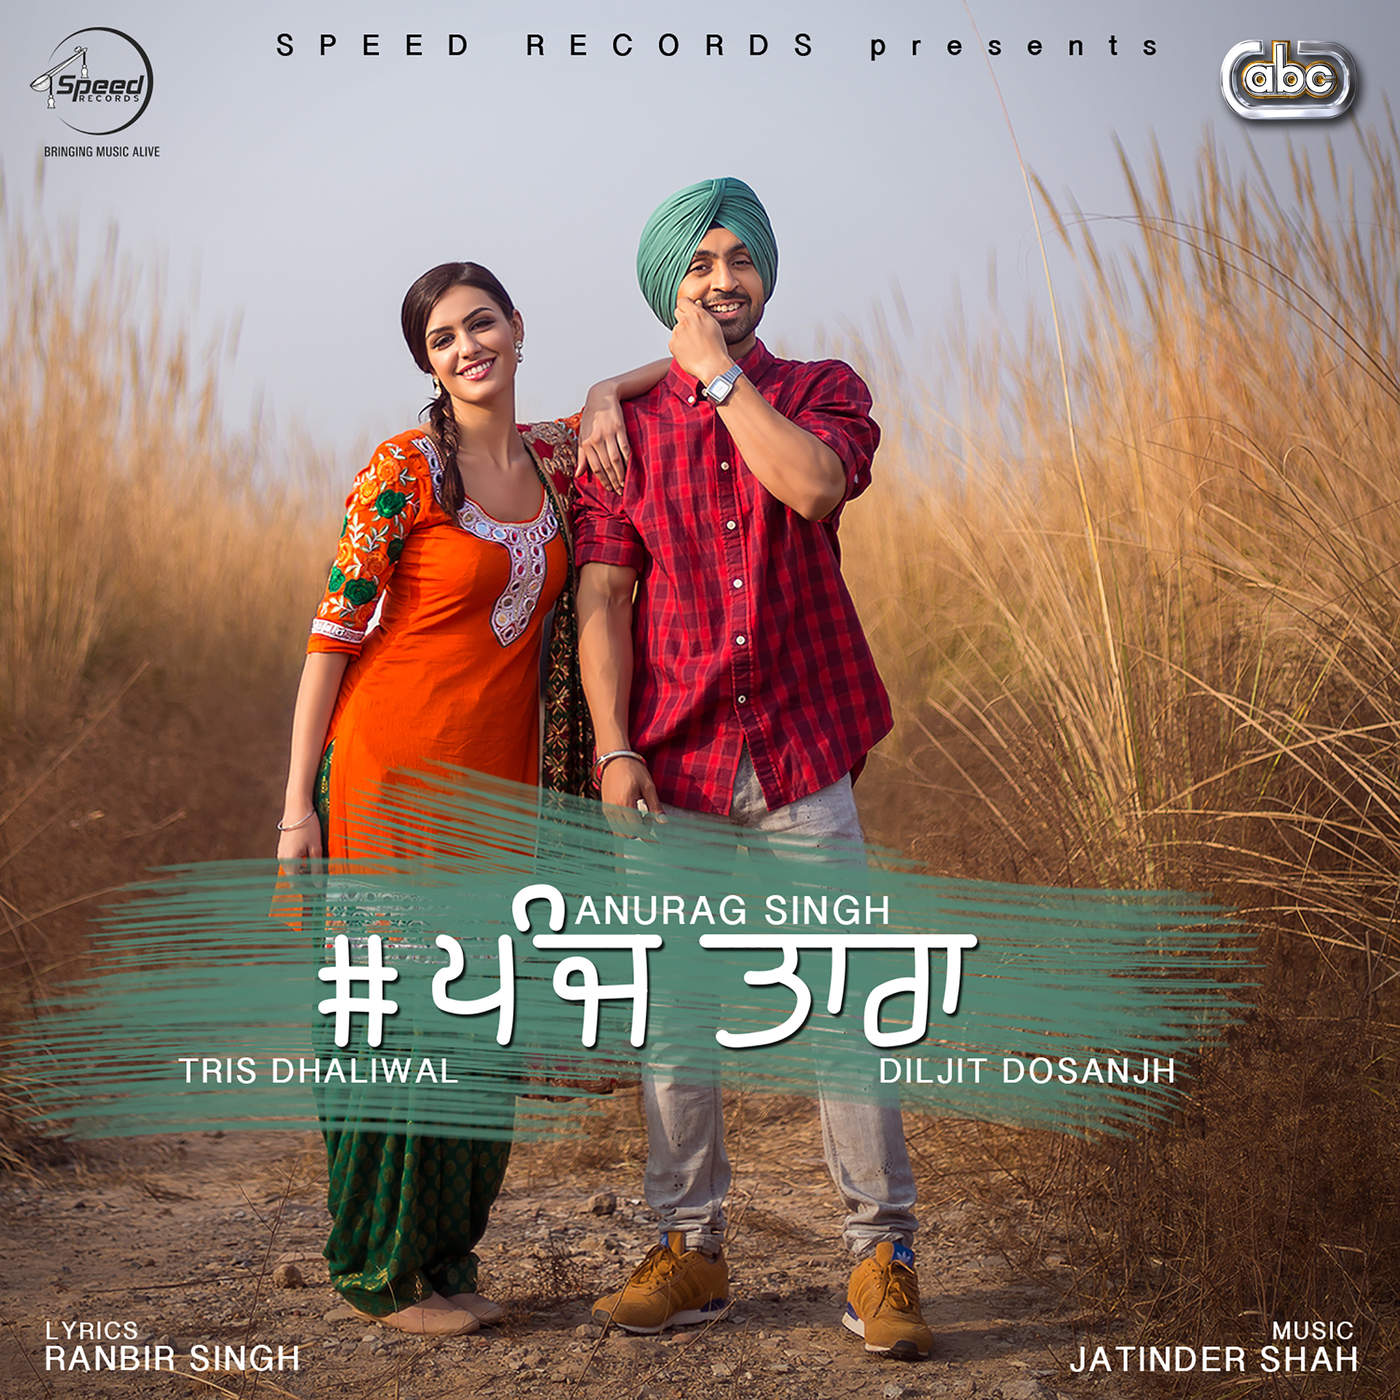 Diljit Dosanjh - 5 Taara (with Jatinder Shah) - Single Cover